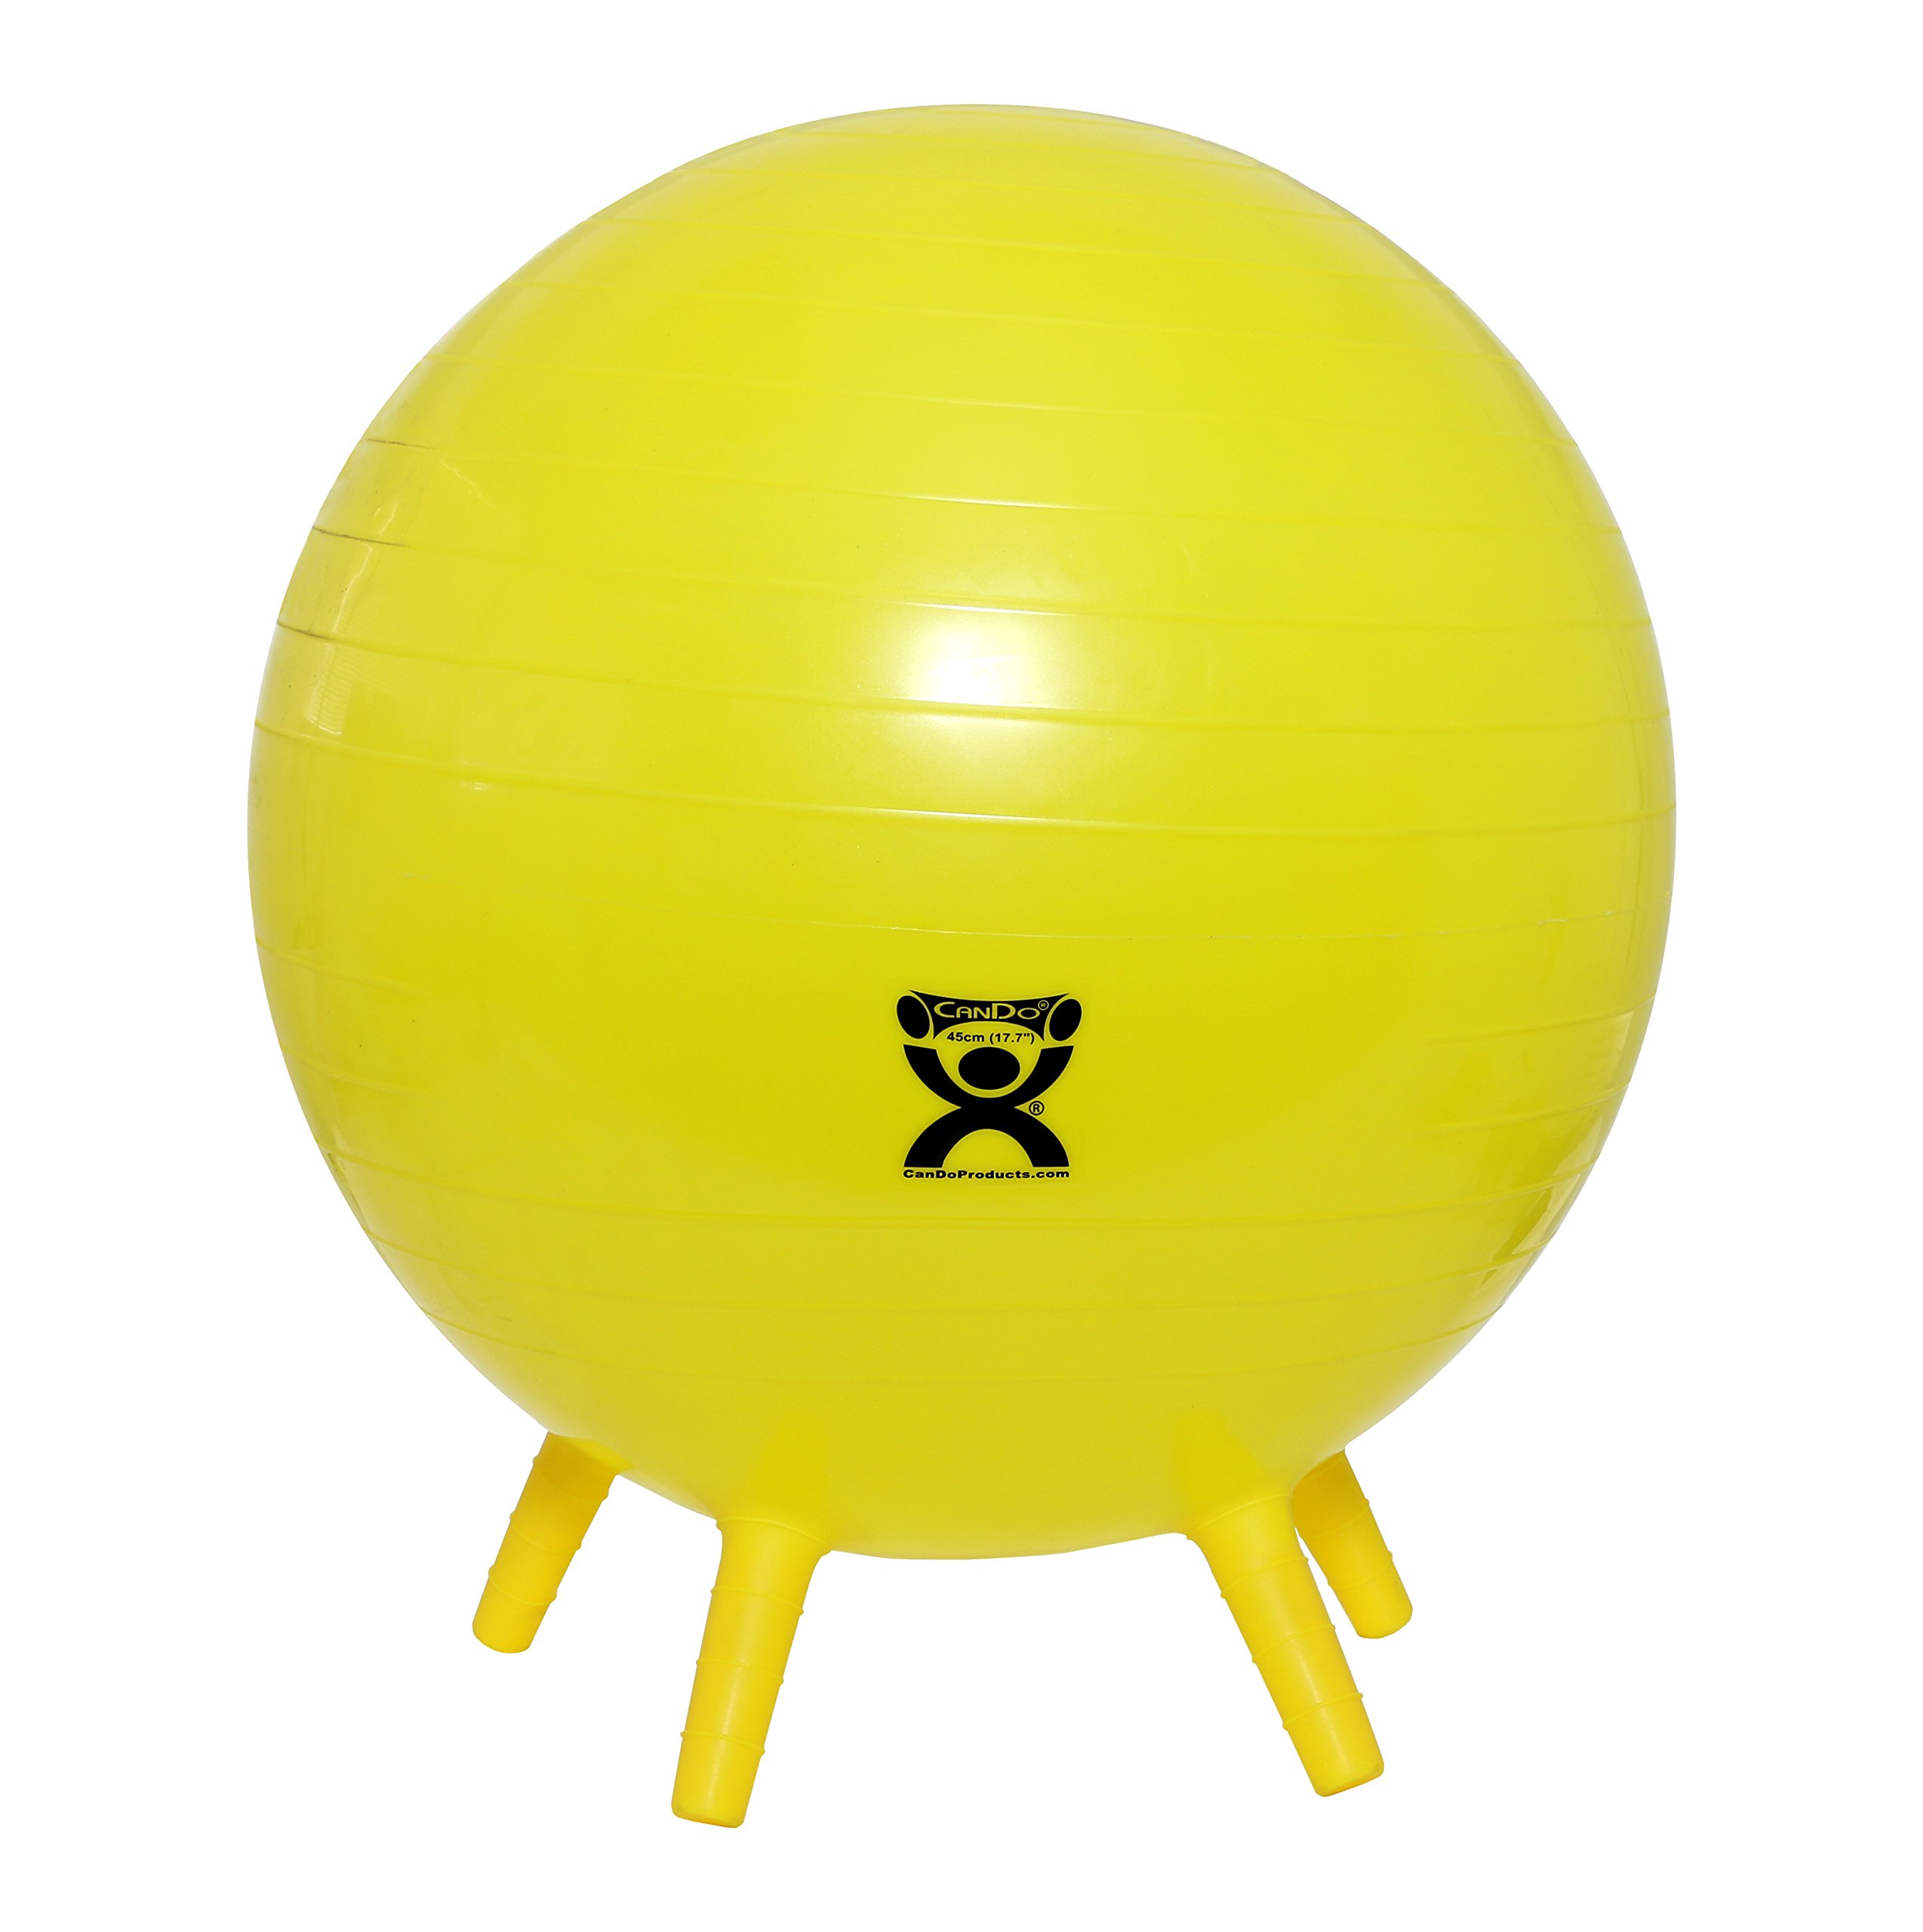 CanDo NonSlip Inflatable Exercise Ball with Stability Feet, Yellow, 17.7''